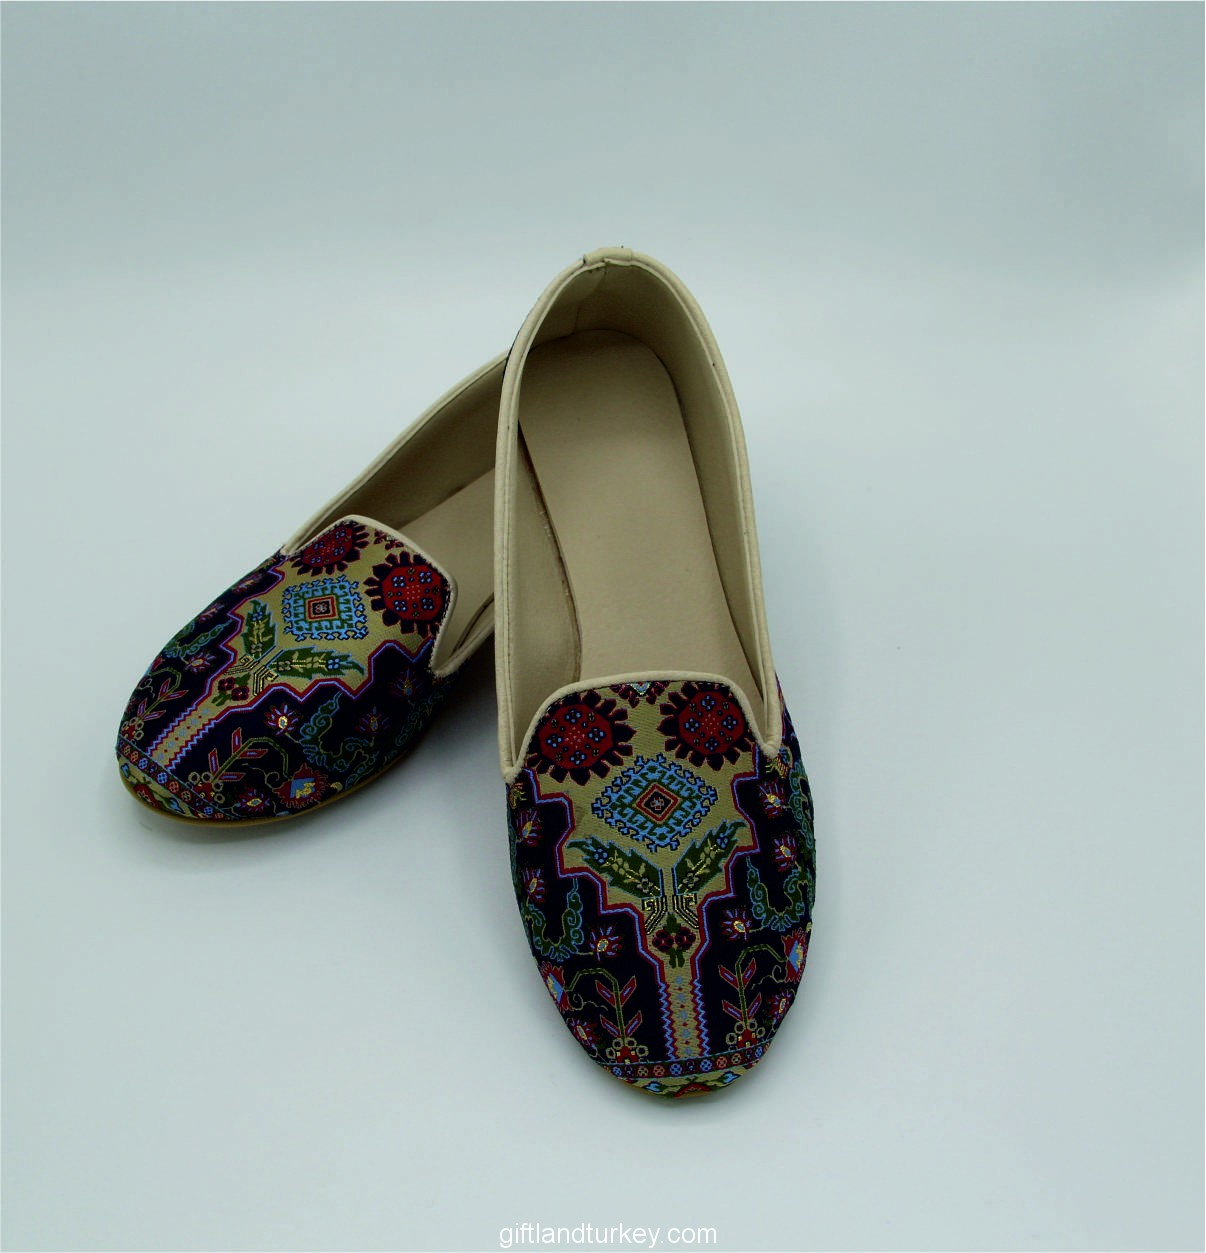 Turkish Shoes Supliers